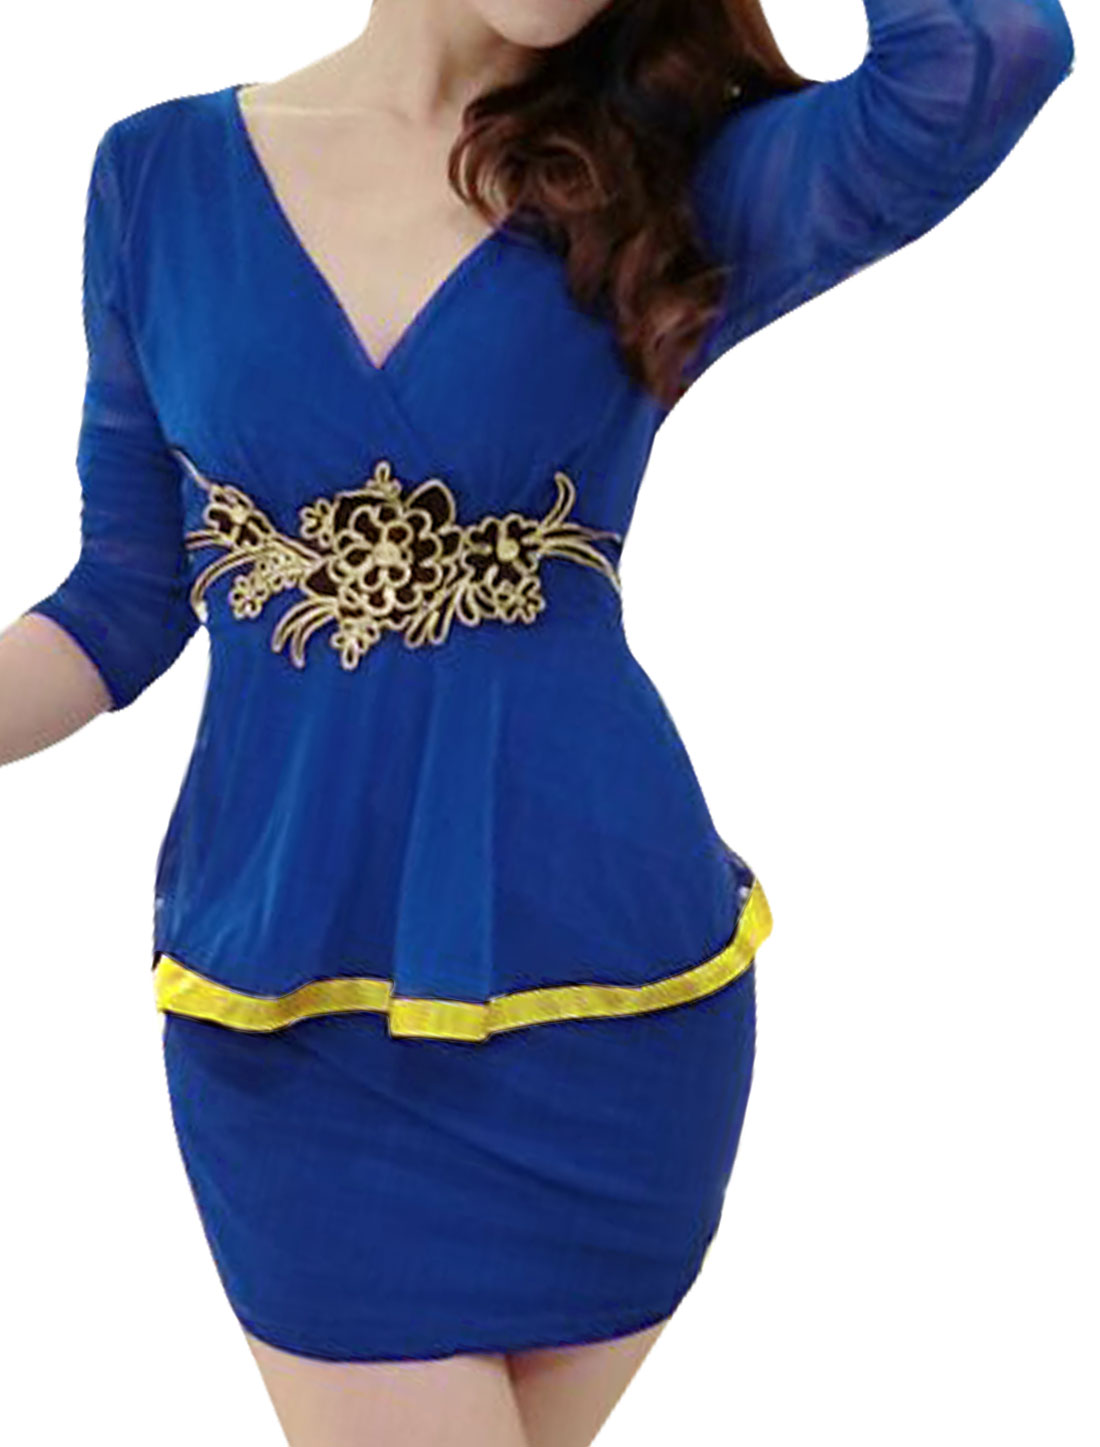 Woman Crossover V Neck Flower Applique Mesh Peplum Dress Blue S